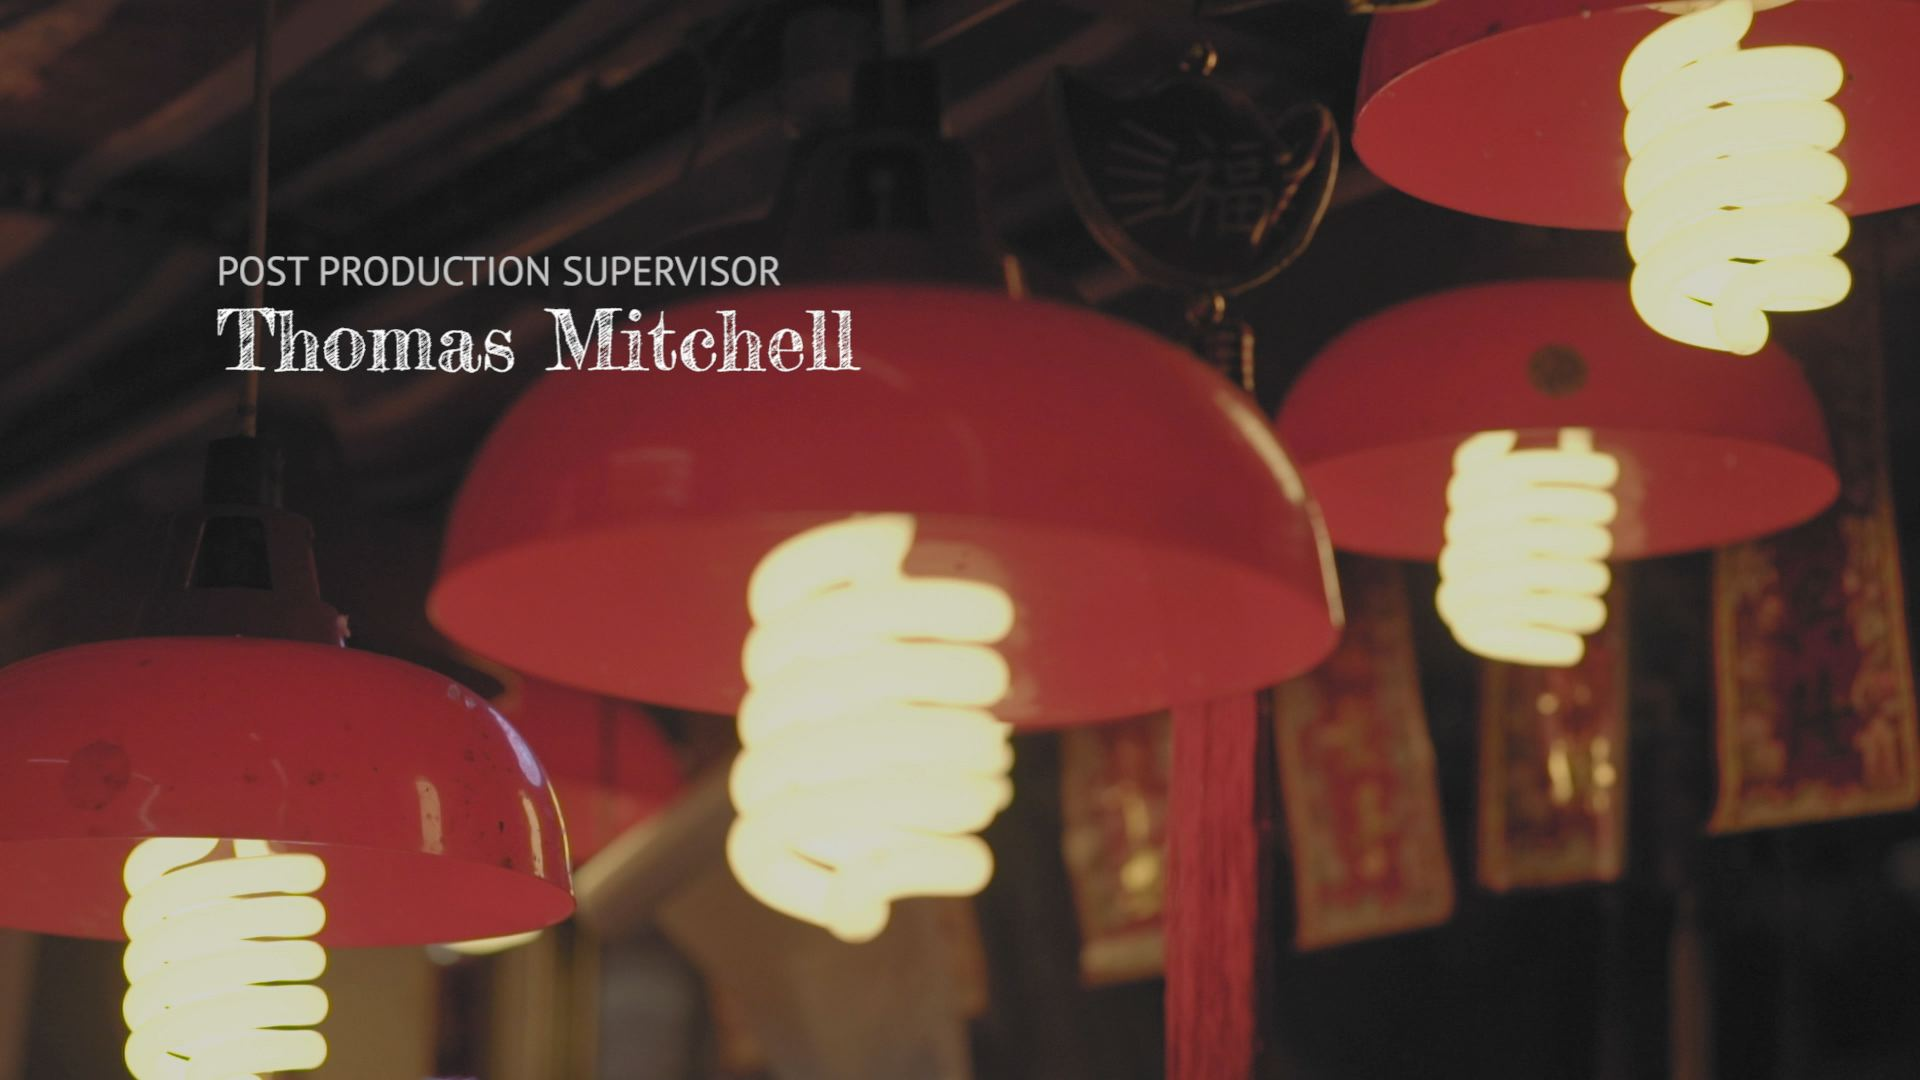 Opening titles scene with red lanterns